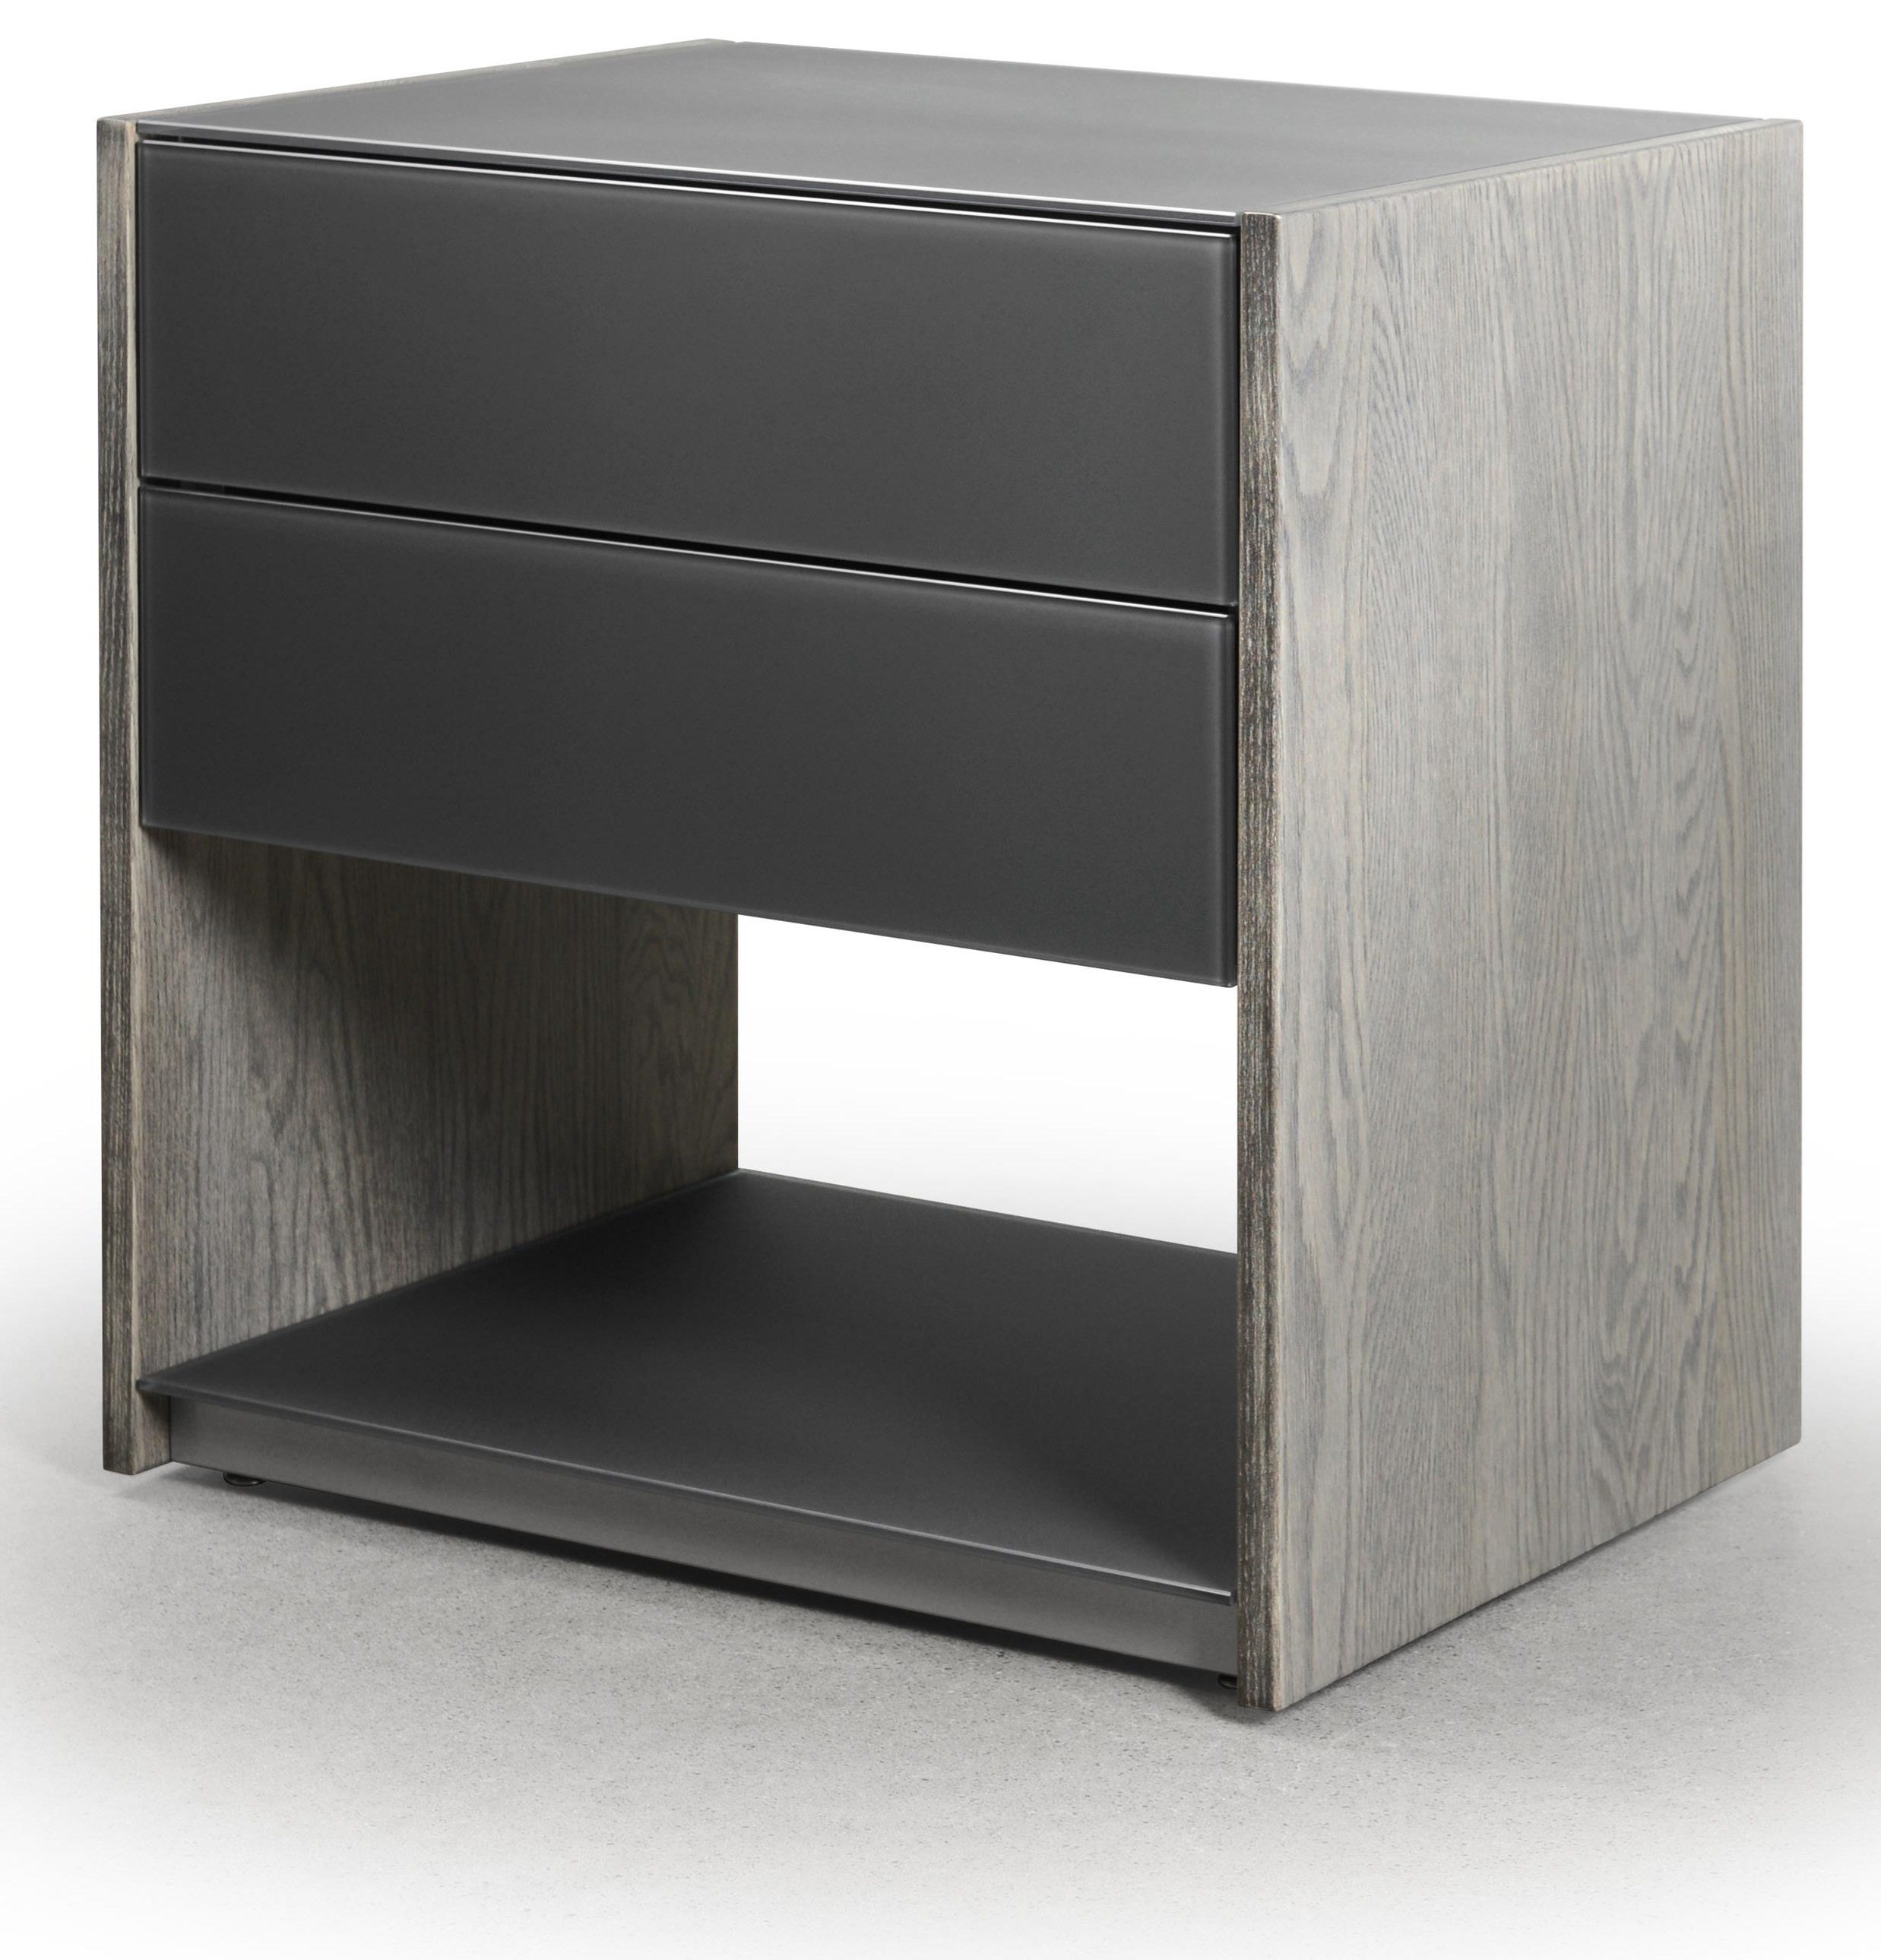 Vision Vision 2 dwr Nightstand by Trica at Stoney Creek Furniture